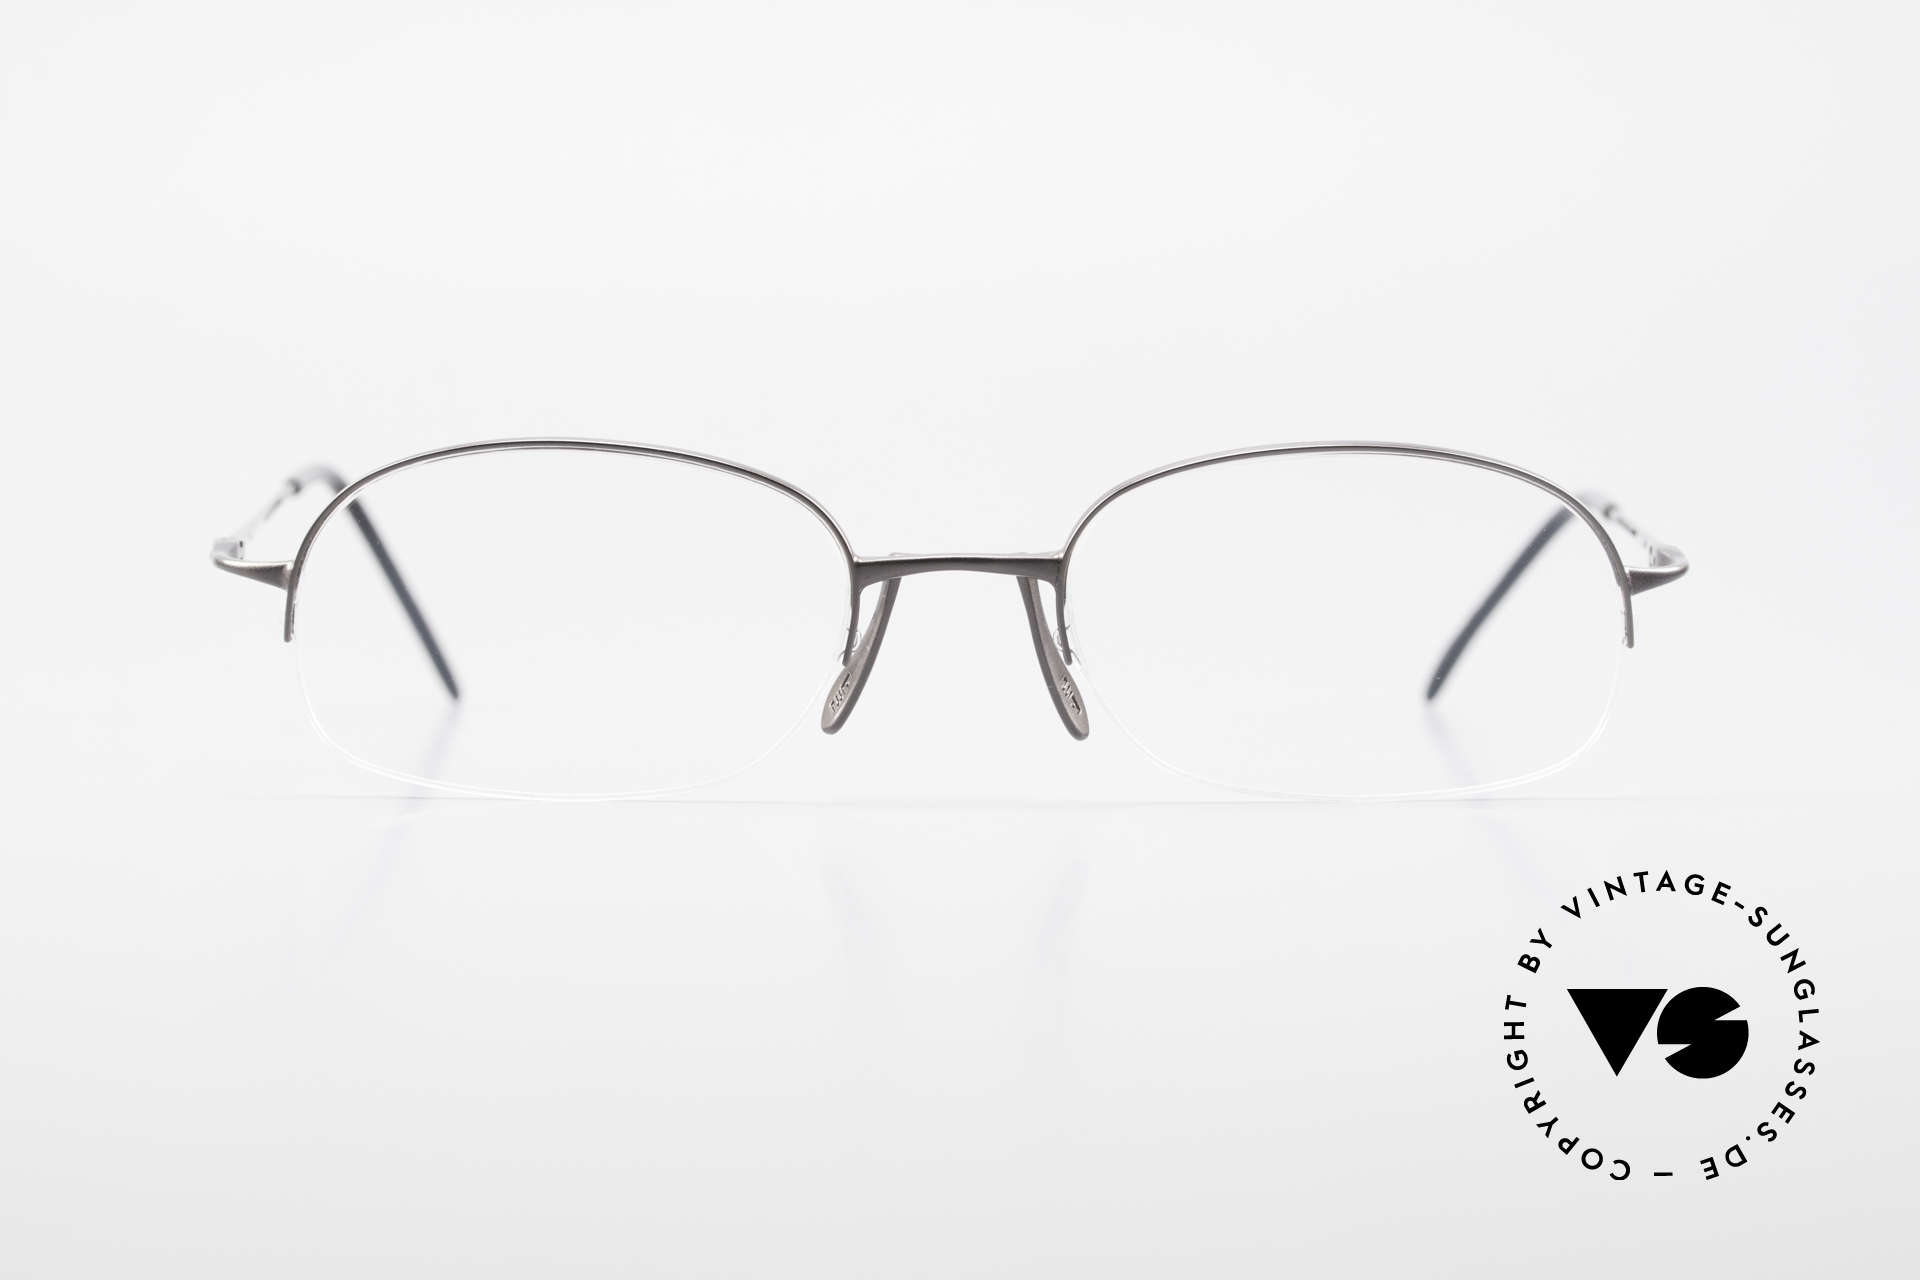 Wolfgang Proksch WP0007 Semi Rimless Titanium Frame, WP: one of the most influential eyewear designers, Made for Men